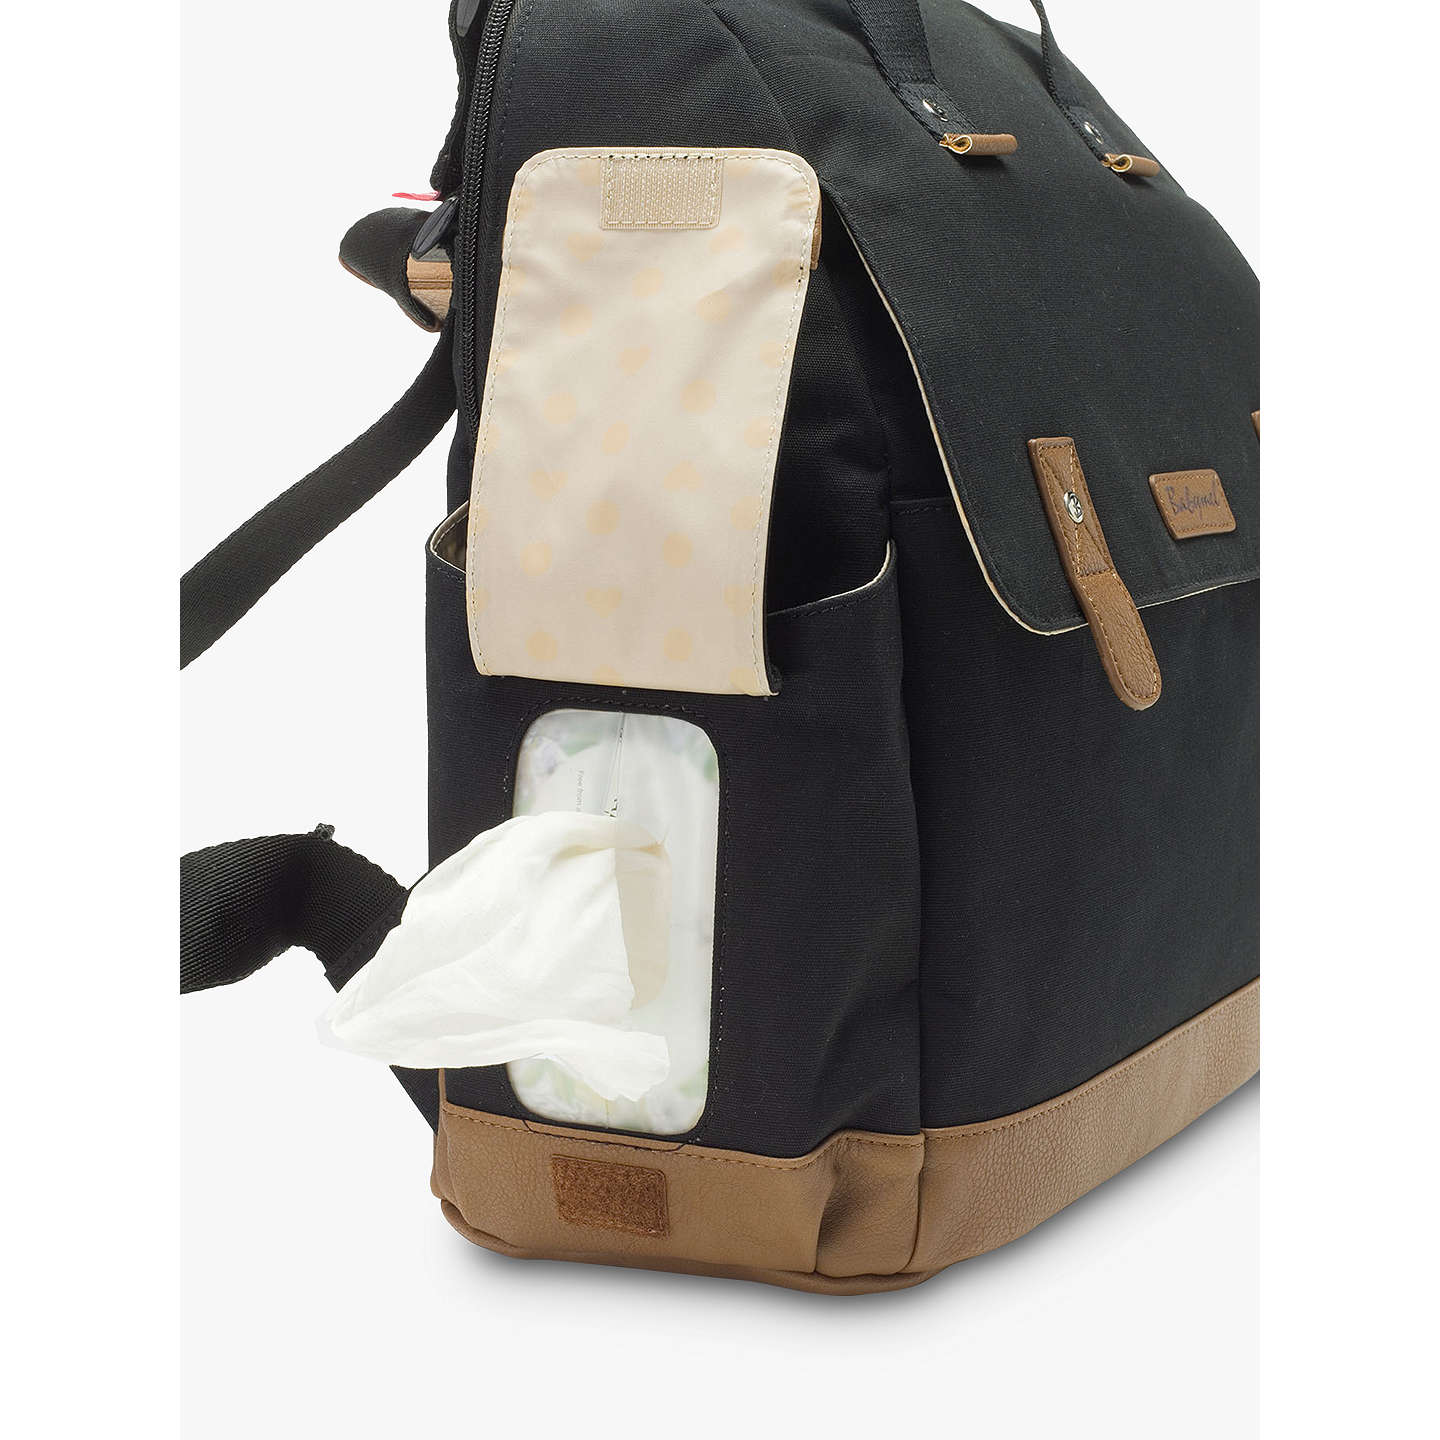 BuyBabymel Robyn Convertible Backpack, Black Online at johnlewis.com